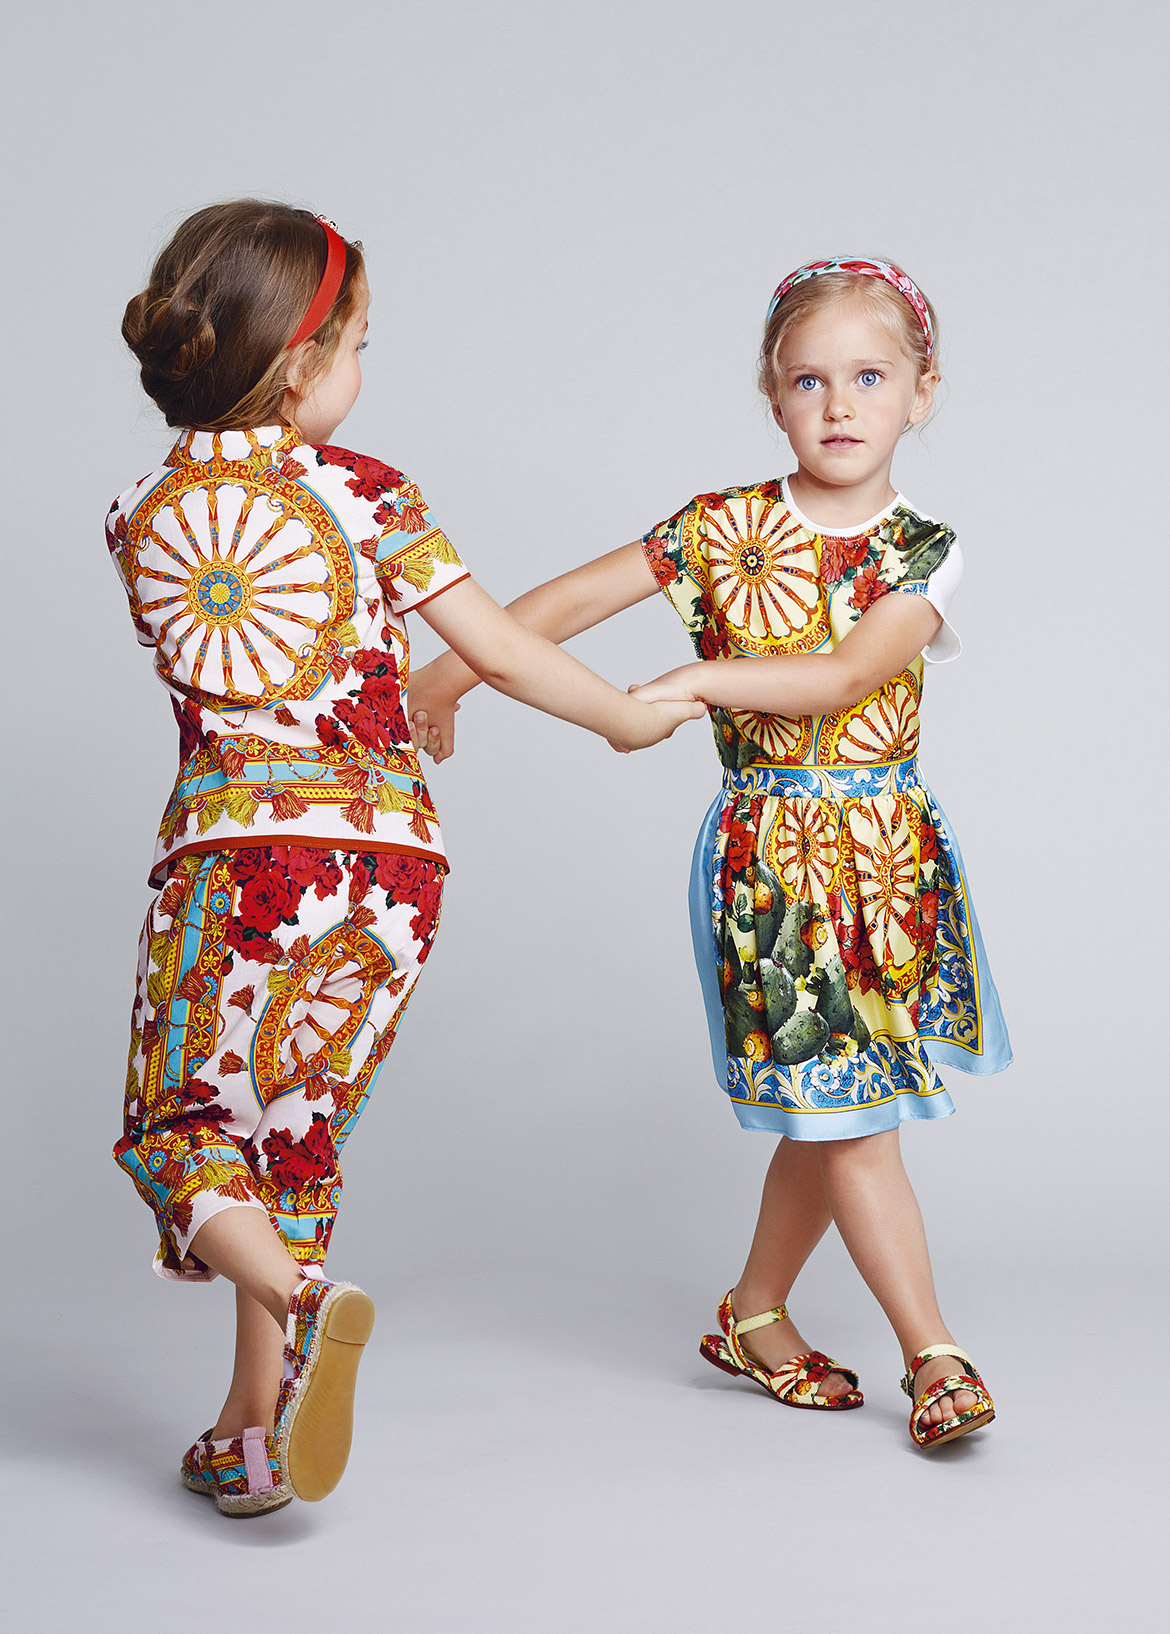 dolce-and-gabbana-ss-2014-child-collection (3)